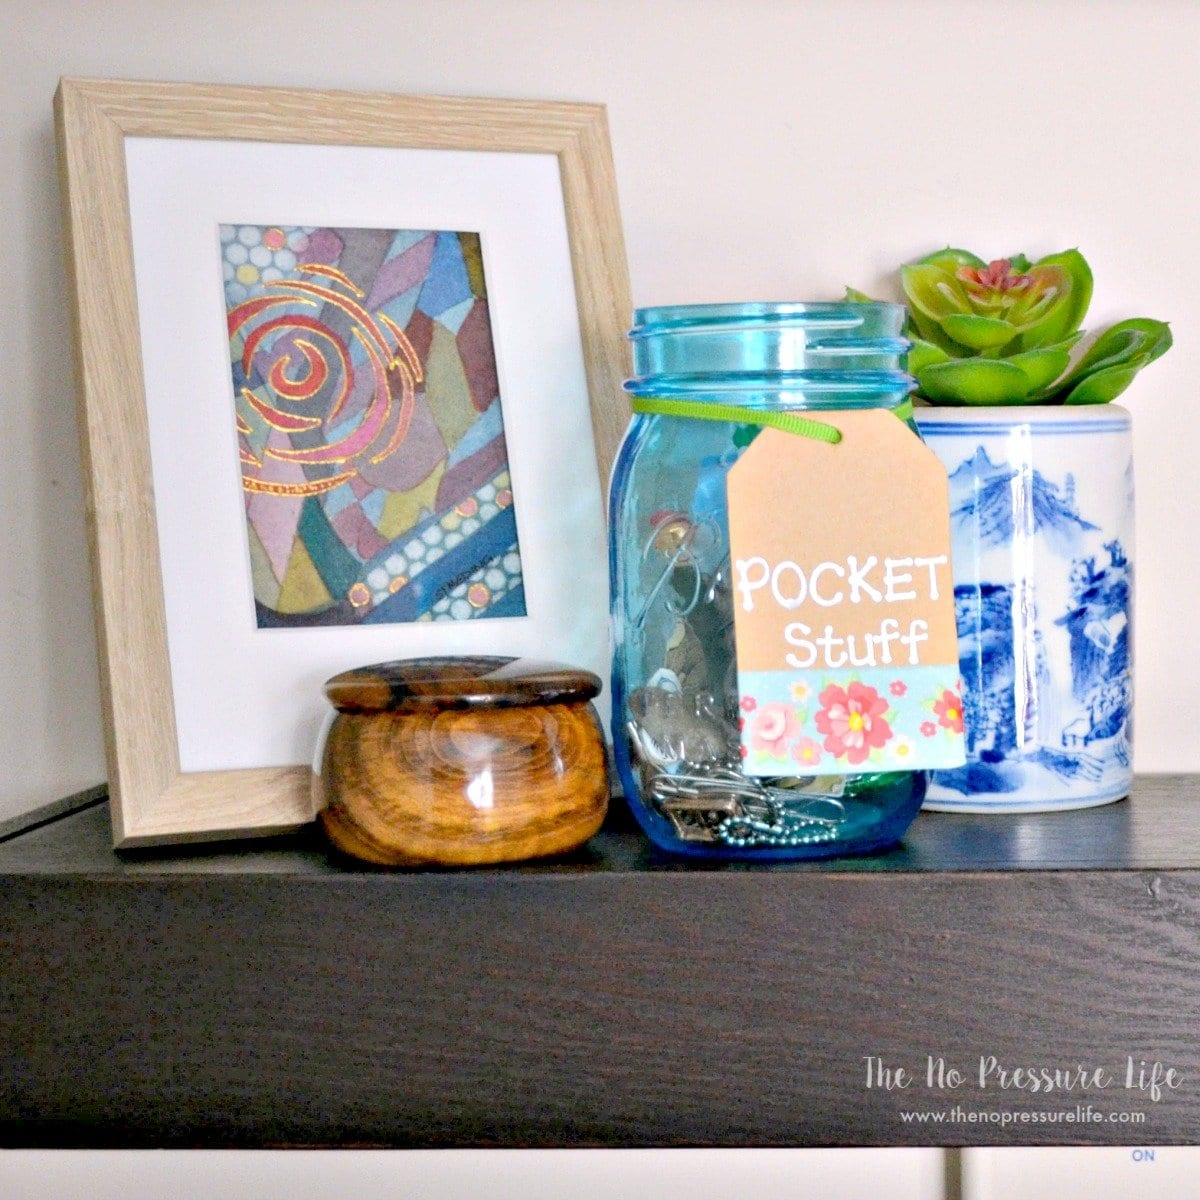 Simple laundry room shelf decor. See more of this small laundry room makeover at The No Pressure Life.